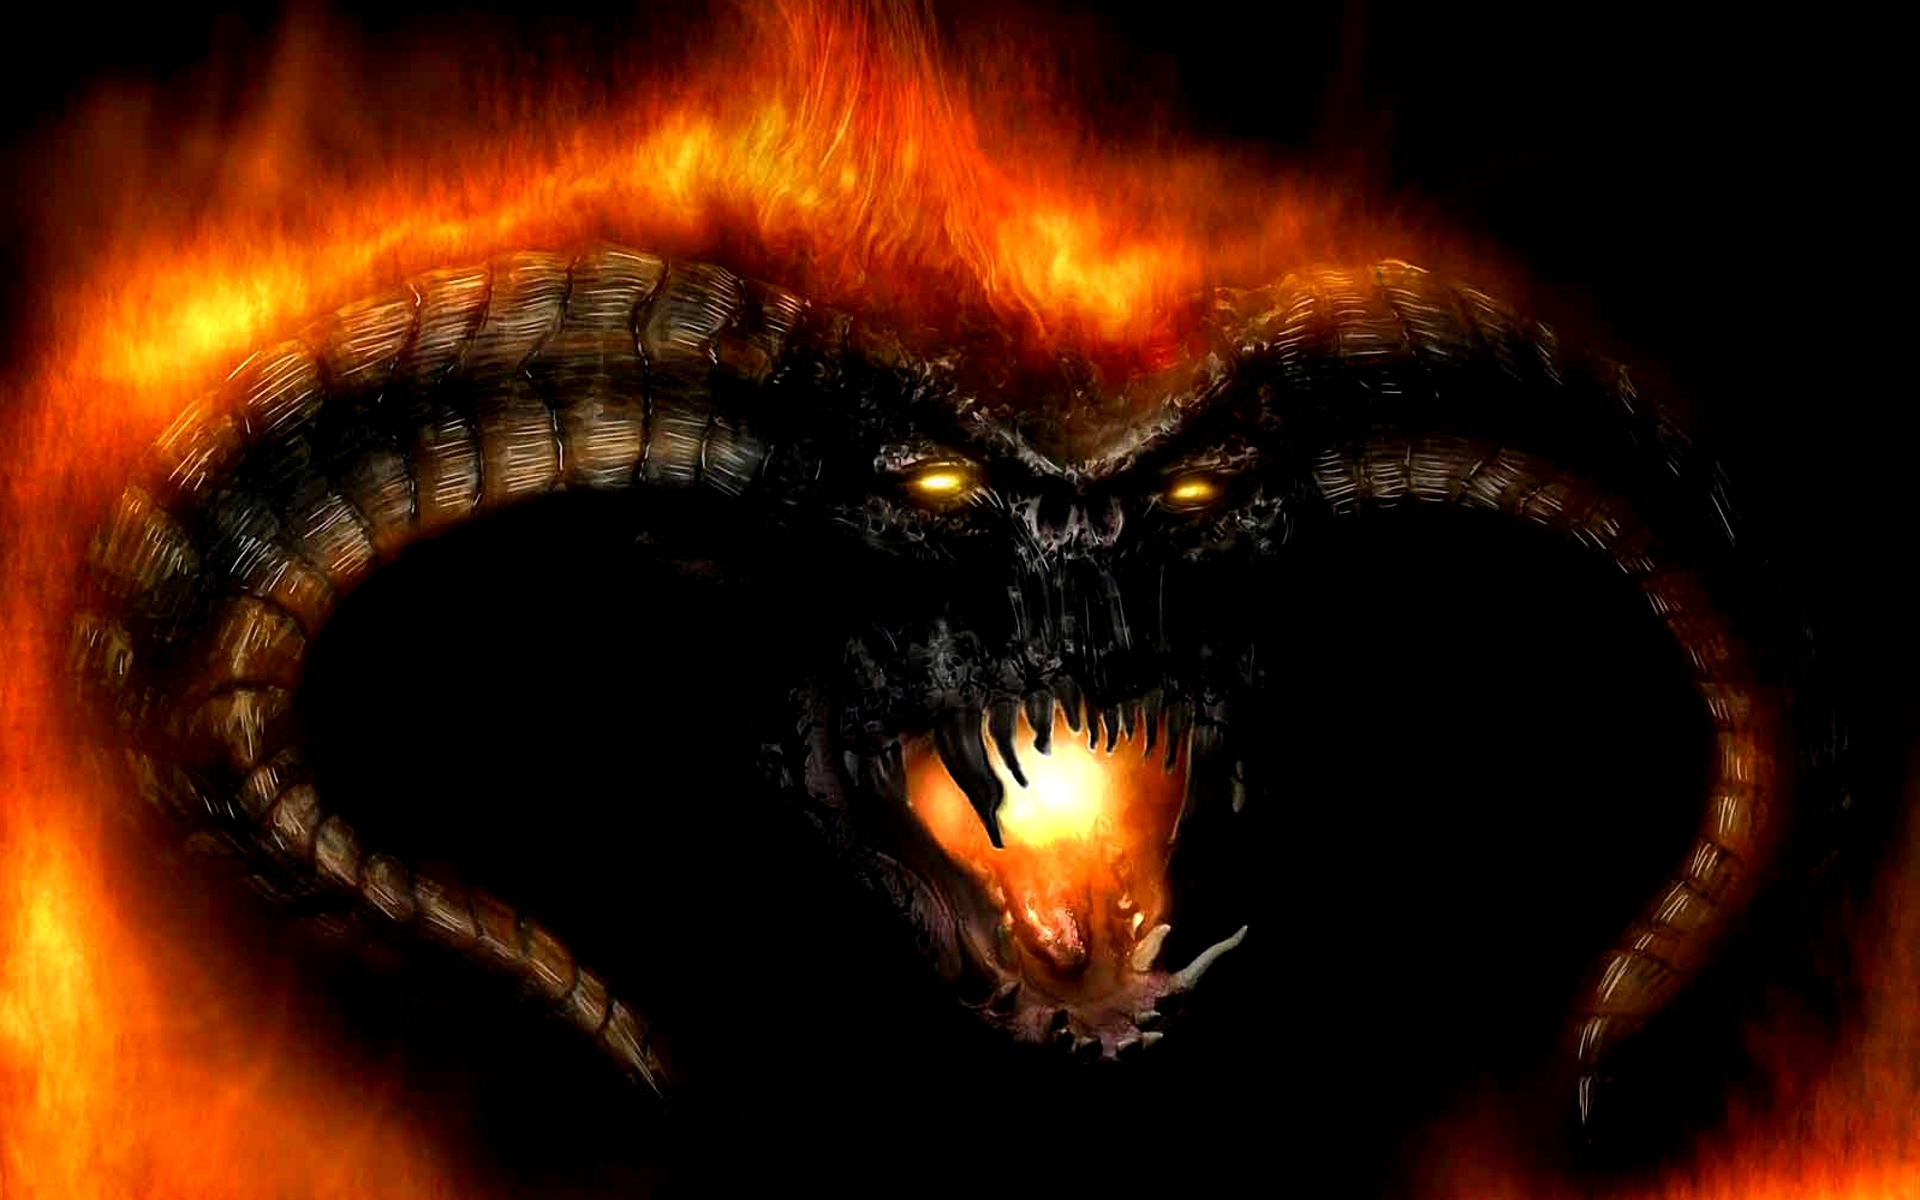 Balrog Wallpaper